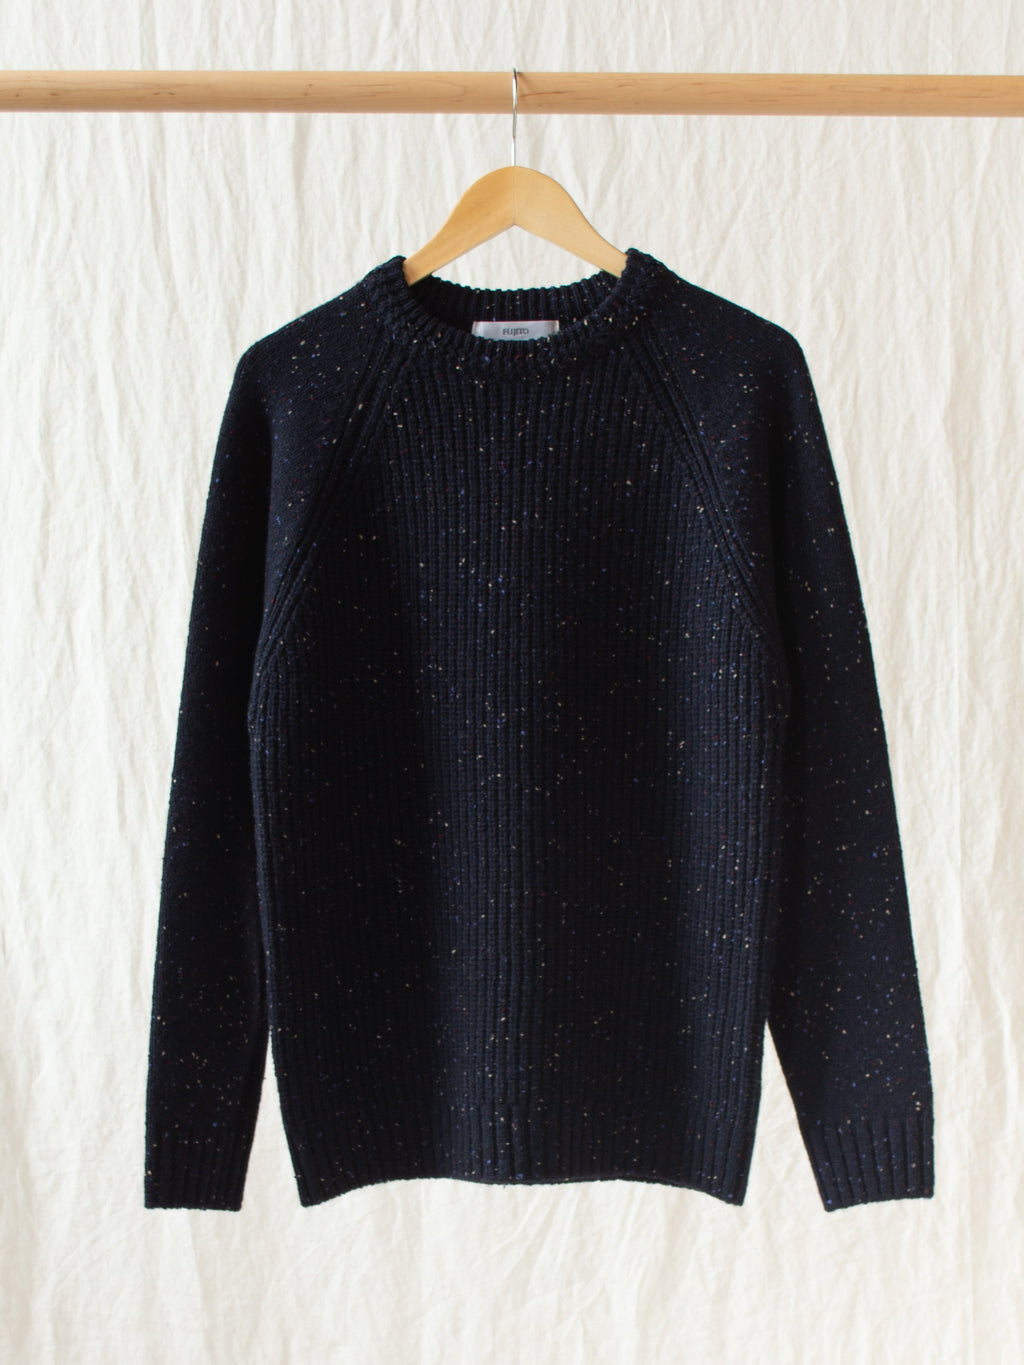 Namu Shop - Fujito Crewneck Rib Sweater - Navy Speckle